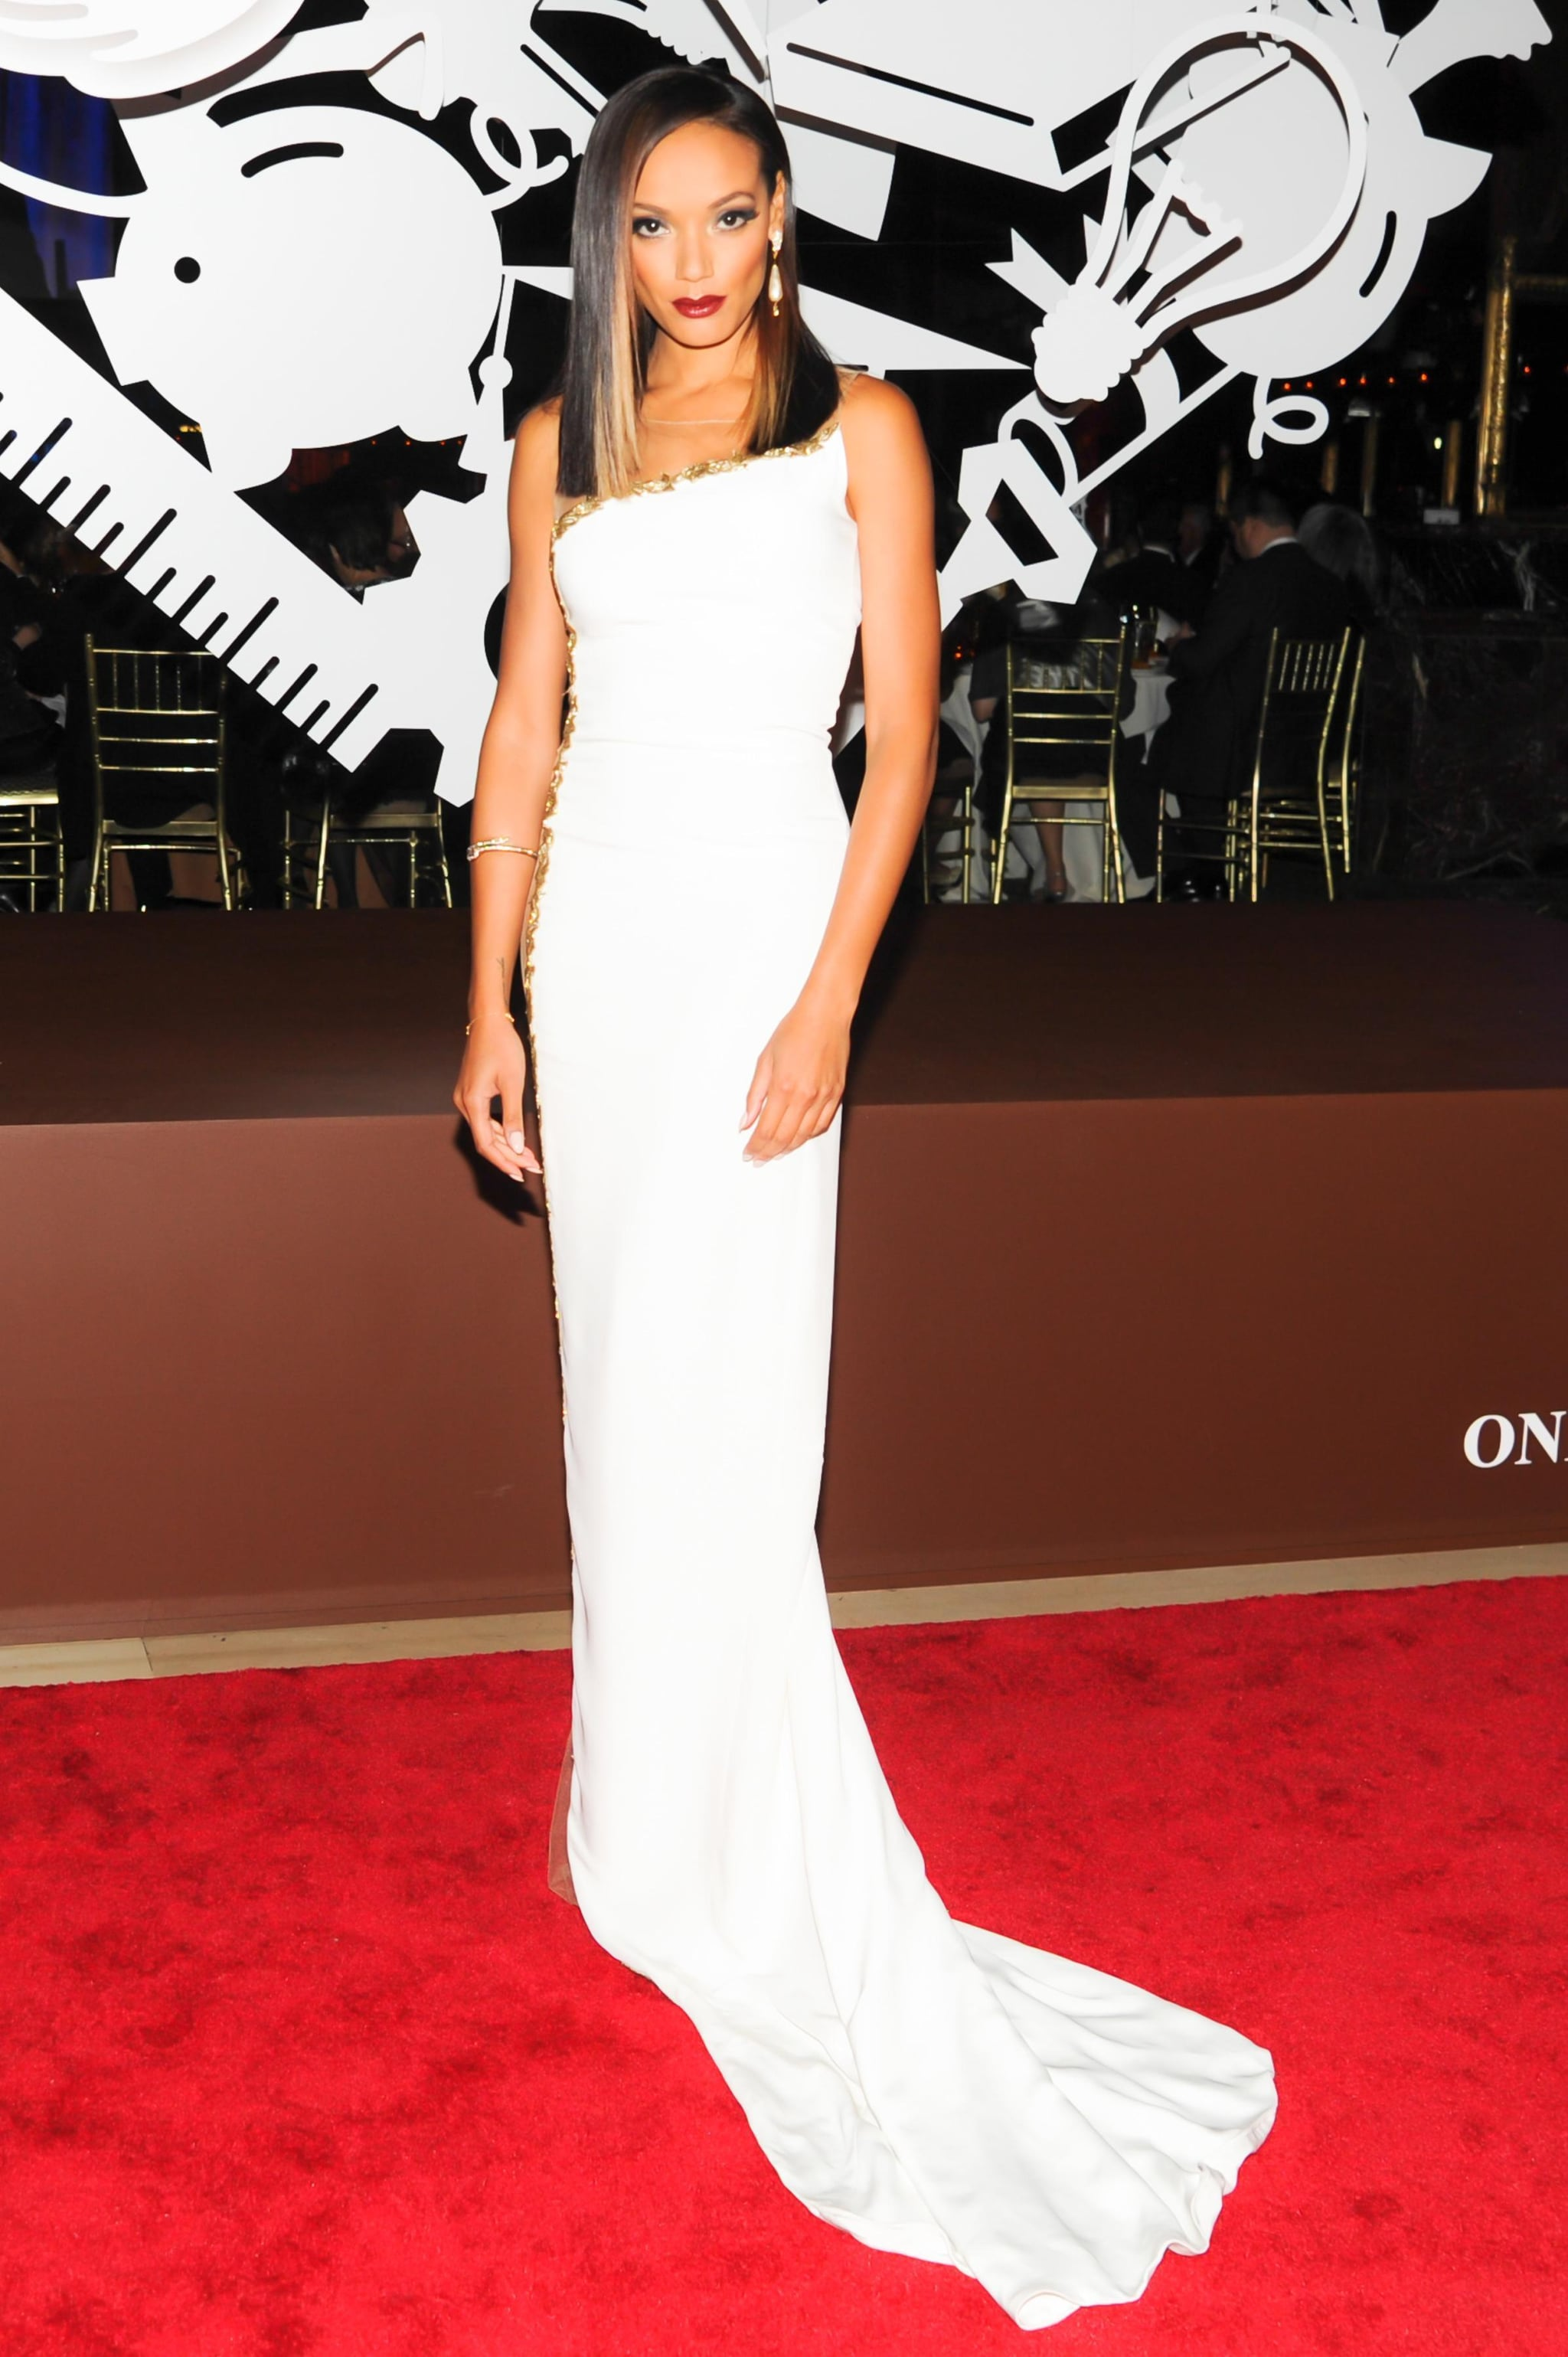 Selita Ebanks worked every angle of her side-slit white gown at Cipriani.